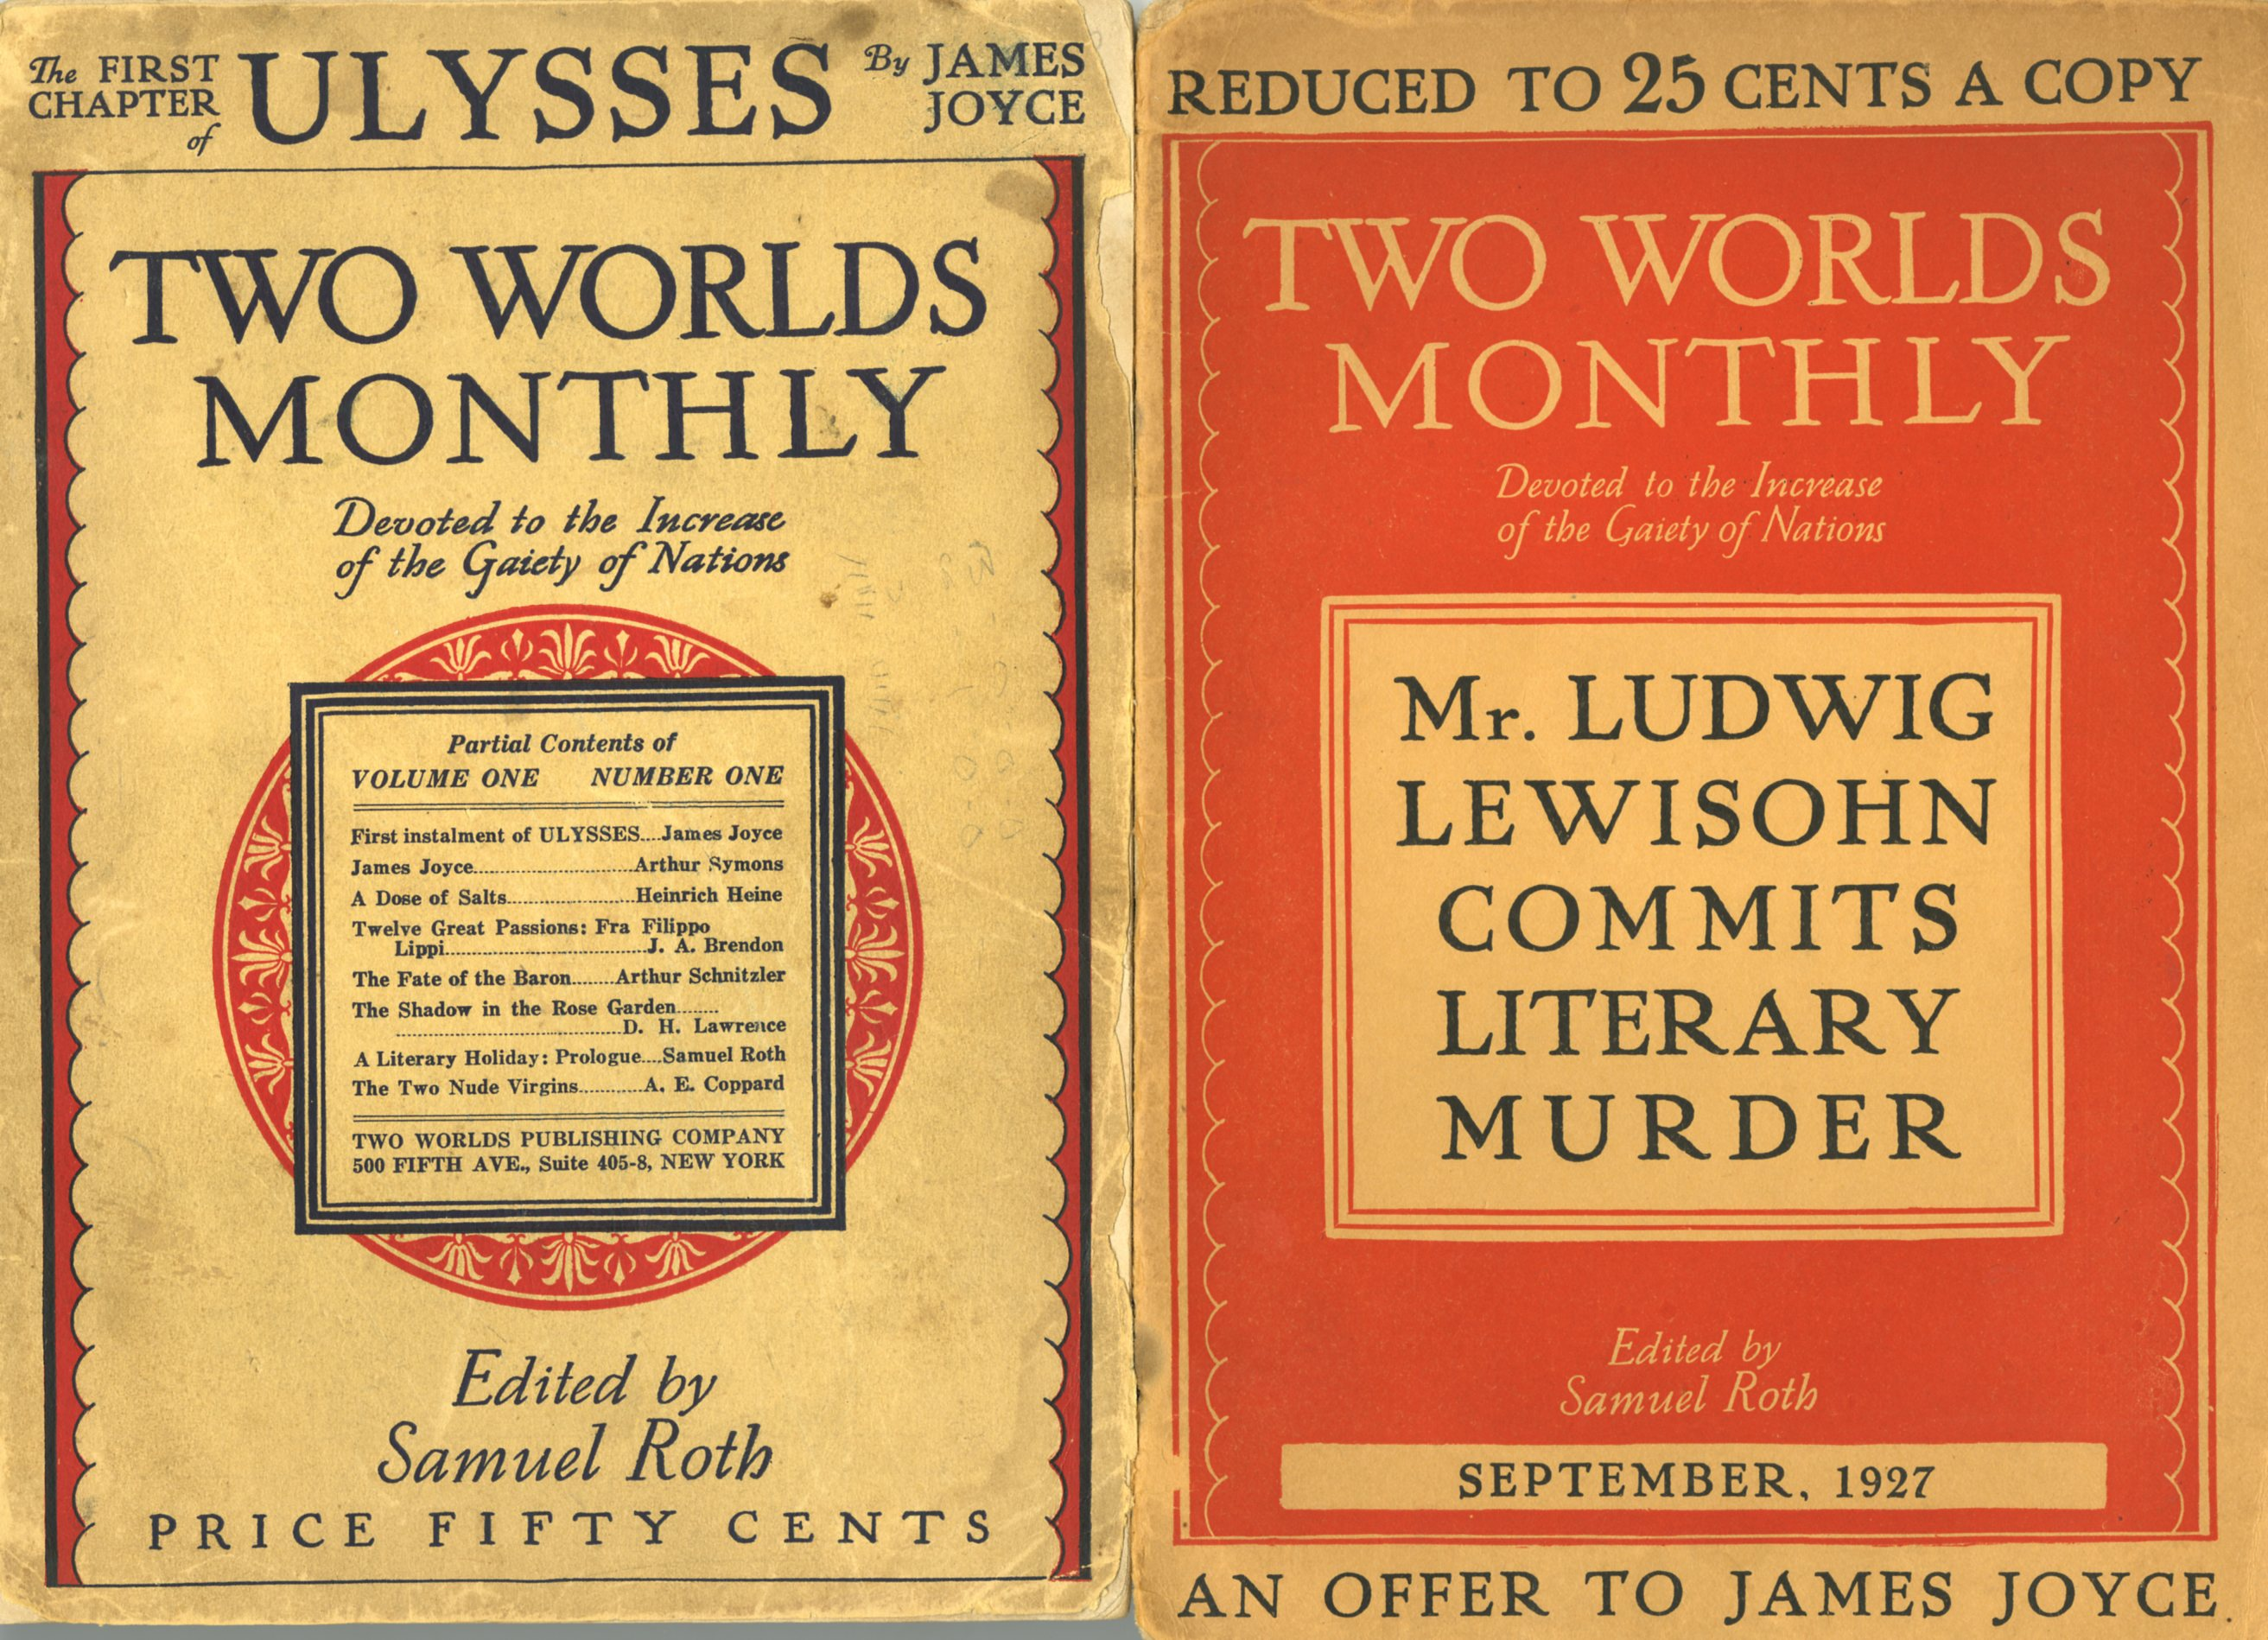 Lot 333 - Rare Unauthorized U.S. Edition of Ulysses Joyce (James) Ulysses - [Two World Monthly, Vol. 1 (No.